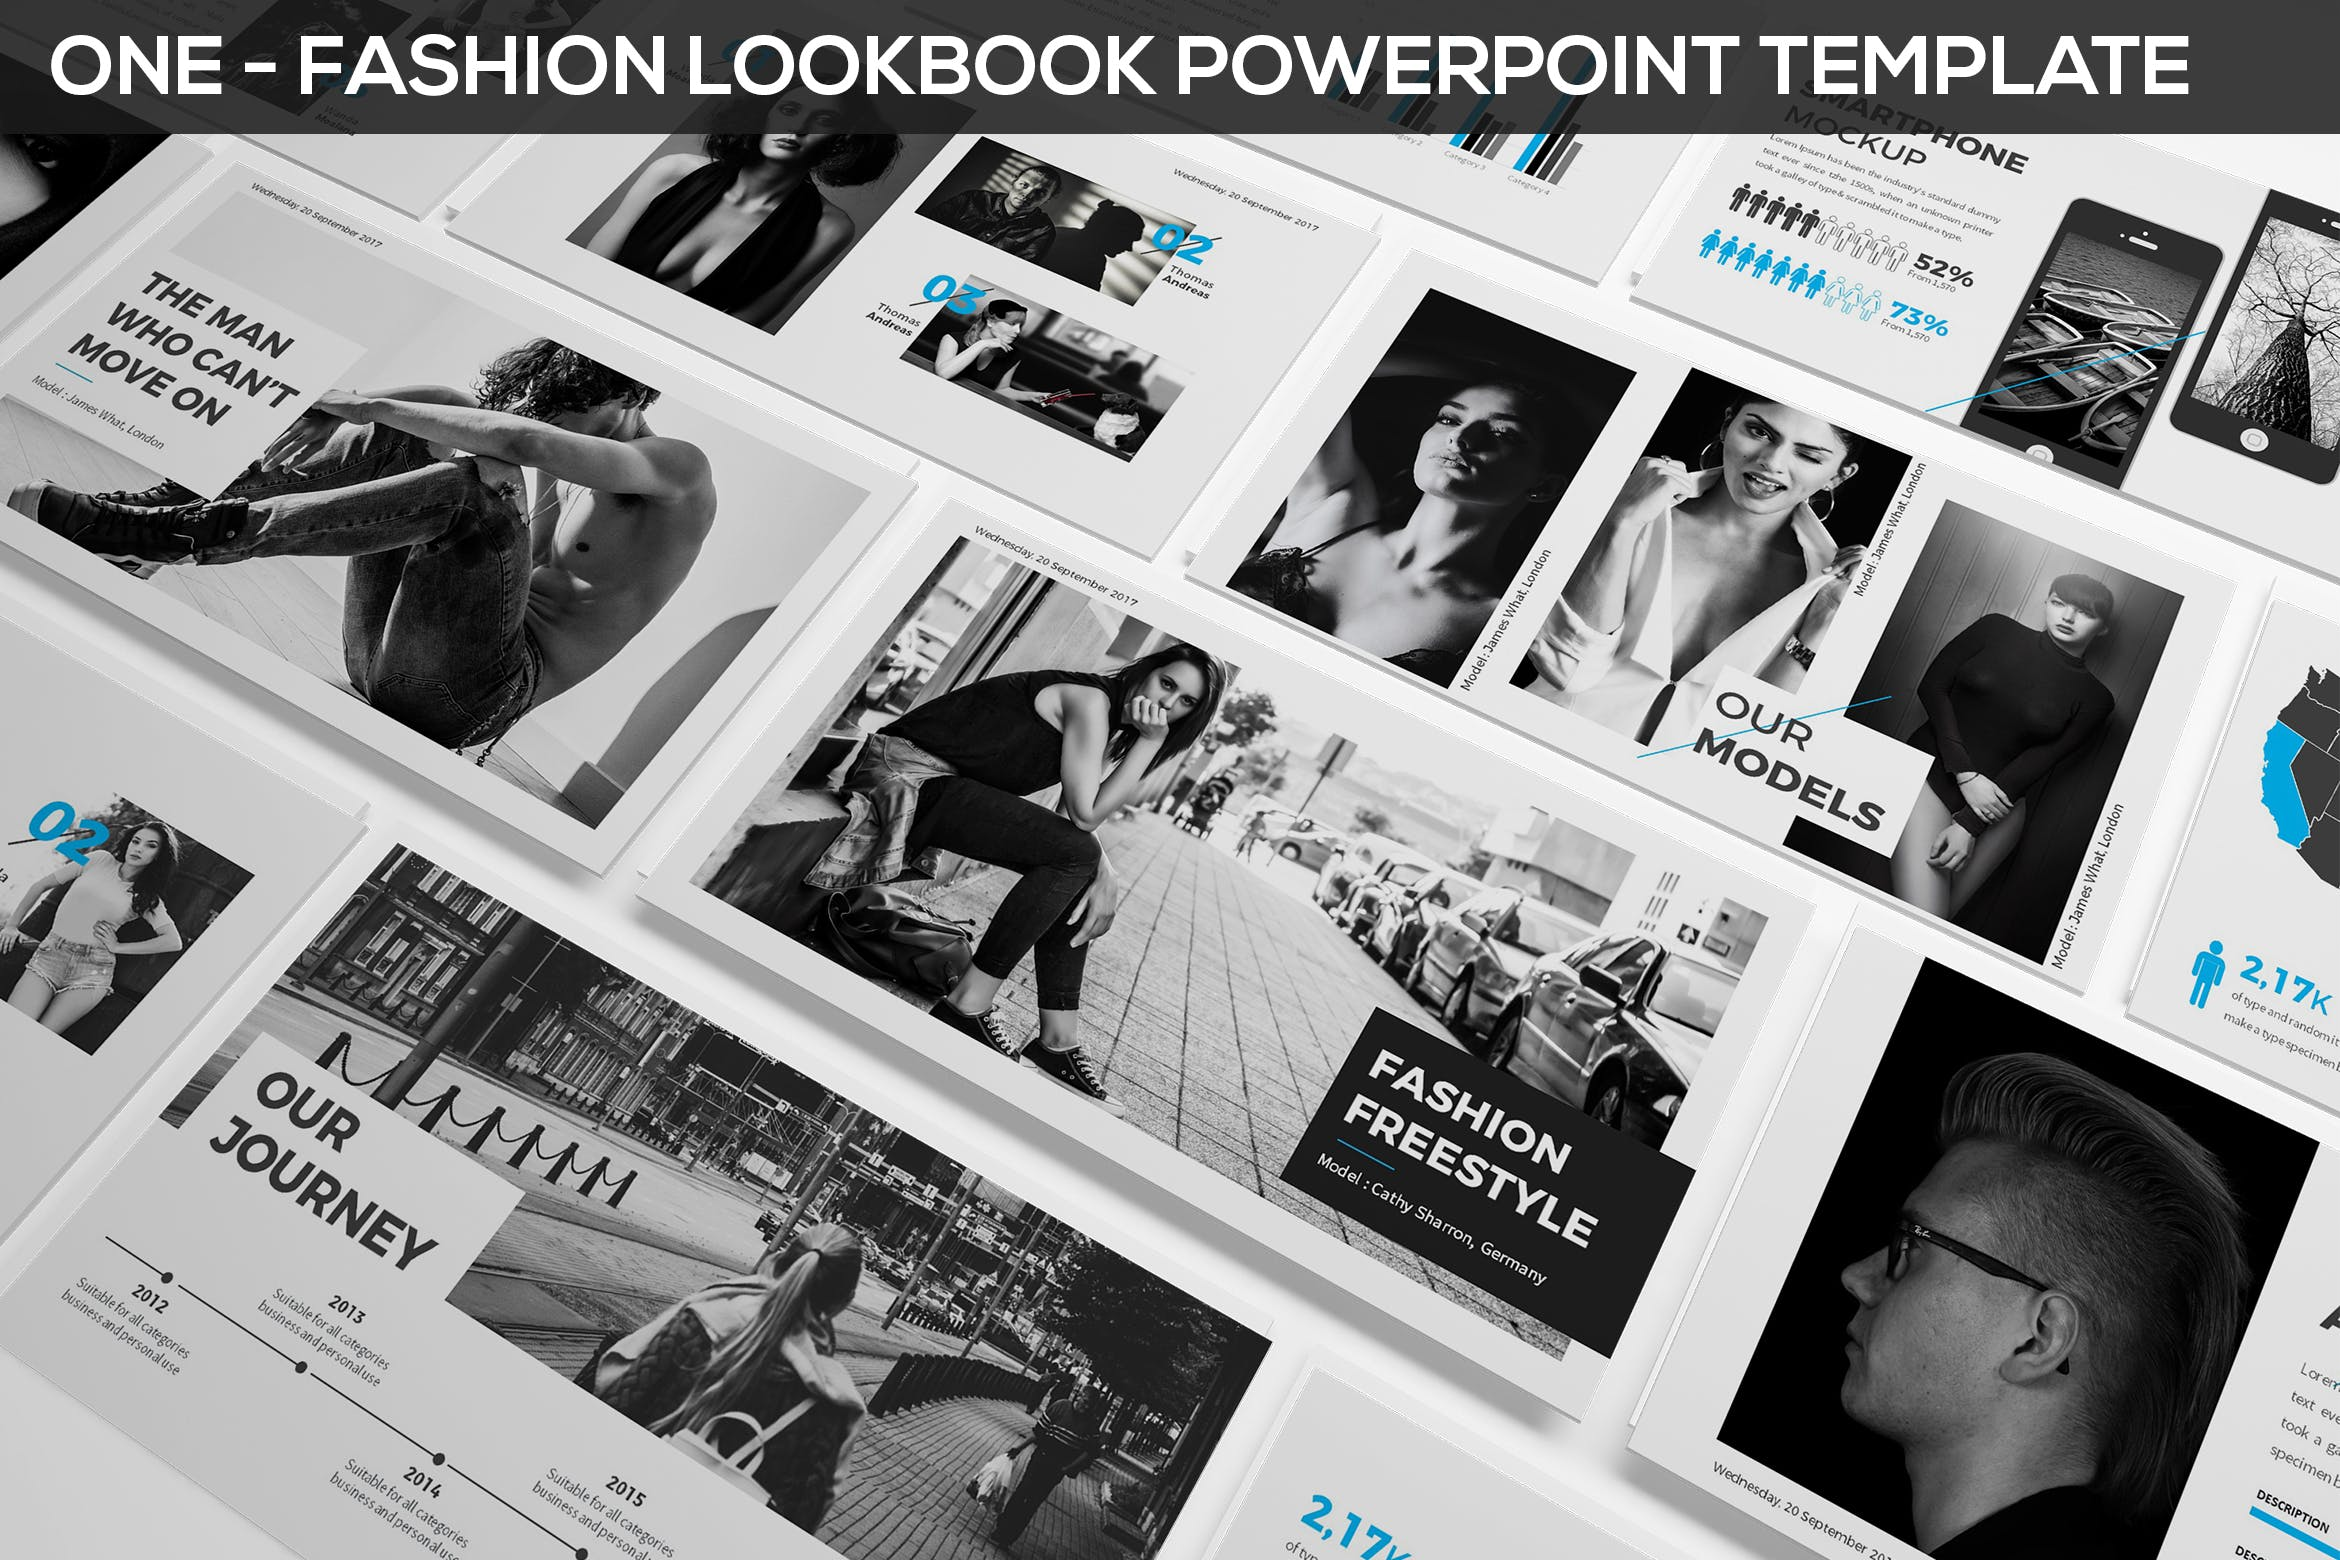 时尚与摄影演示PPT模板 ONE - Fashion & Photography Presentation Template